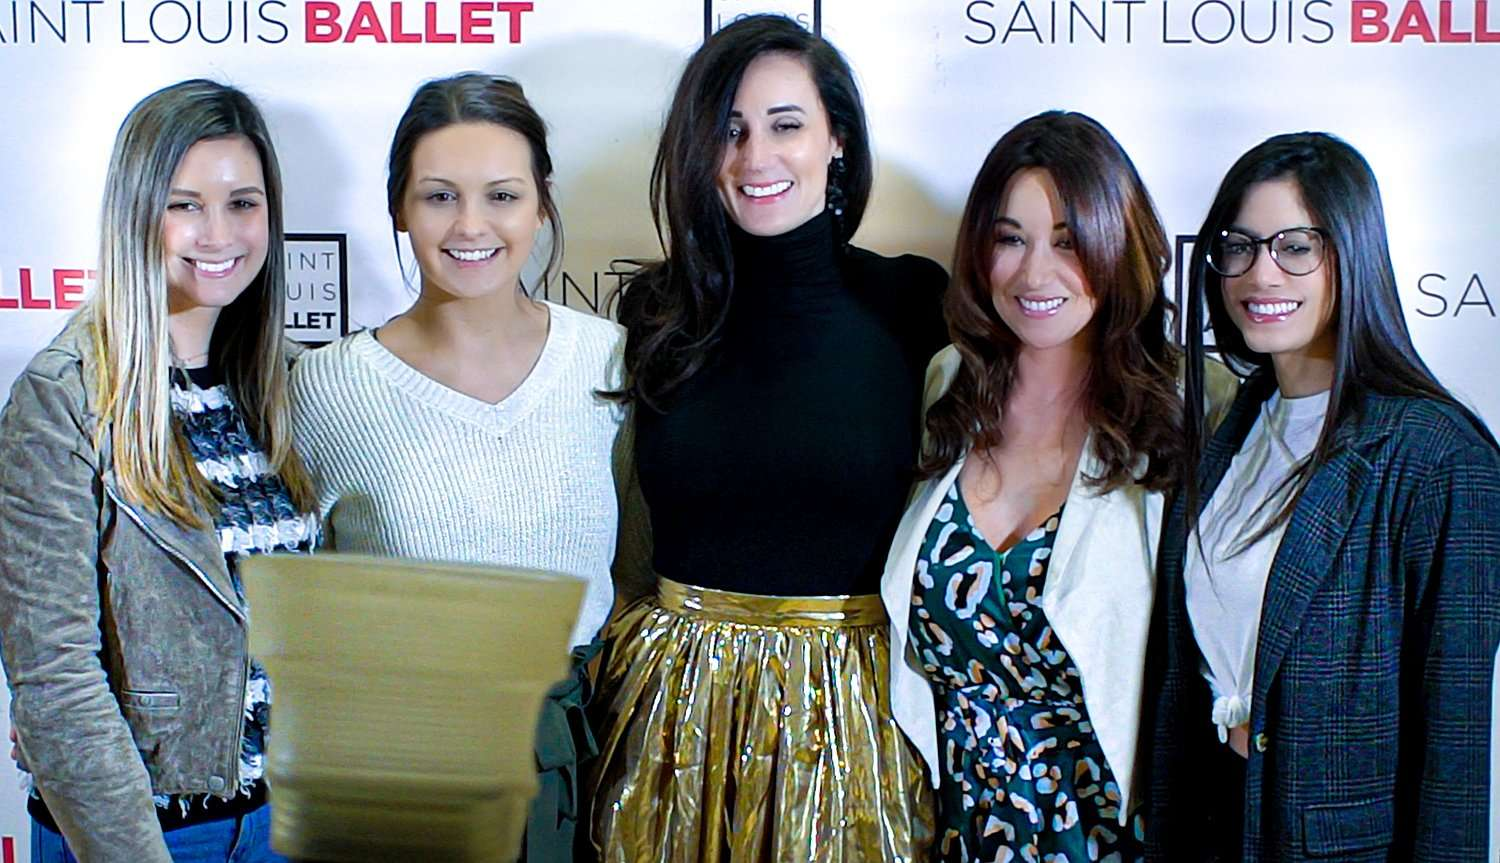 St Louis Ballet Gala Kickoff Fundraiser at Neiman Marcus. credit craig currie